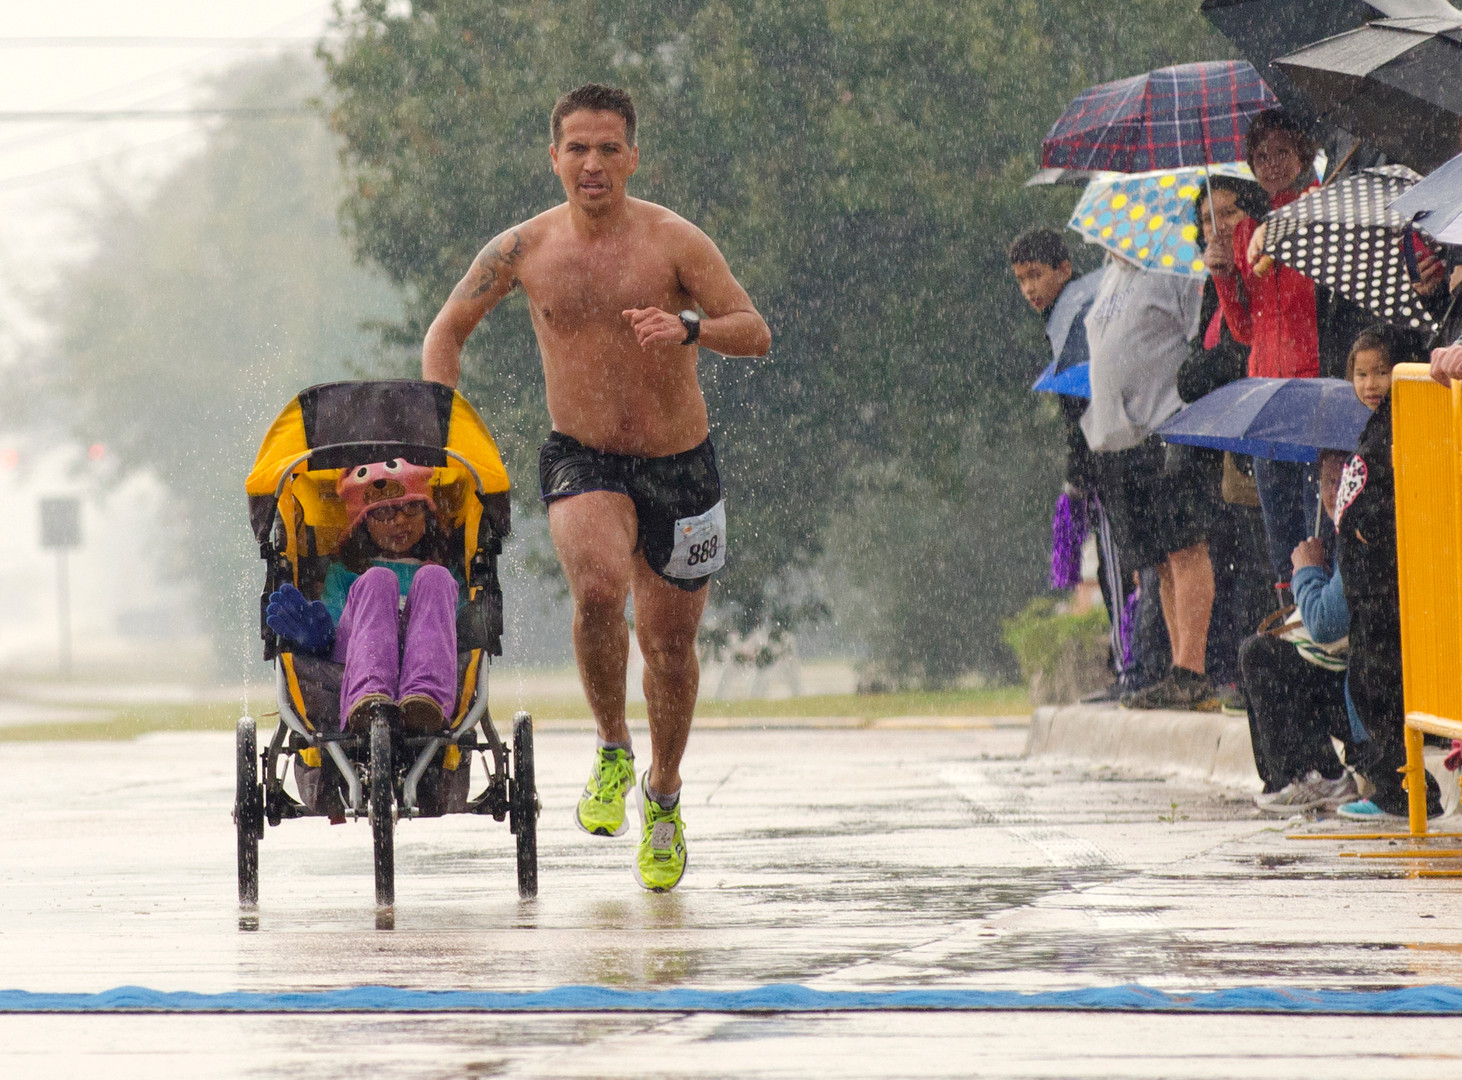 Iram Leon, 34, nears the finish line of the La Porte by the Bay Half Marathon in 10th place while pushing his daughter Kiana, 7, in a jogging stroller. Leon, from Austin, was diagnosed with terminal brain cancer four years ago. (The Houston Chronicle)